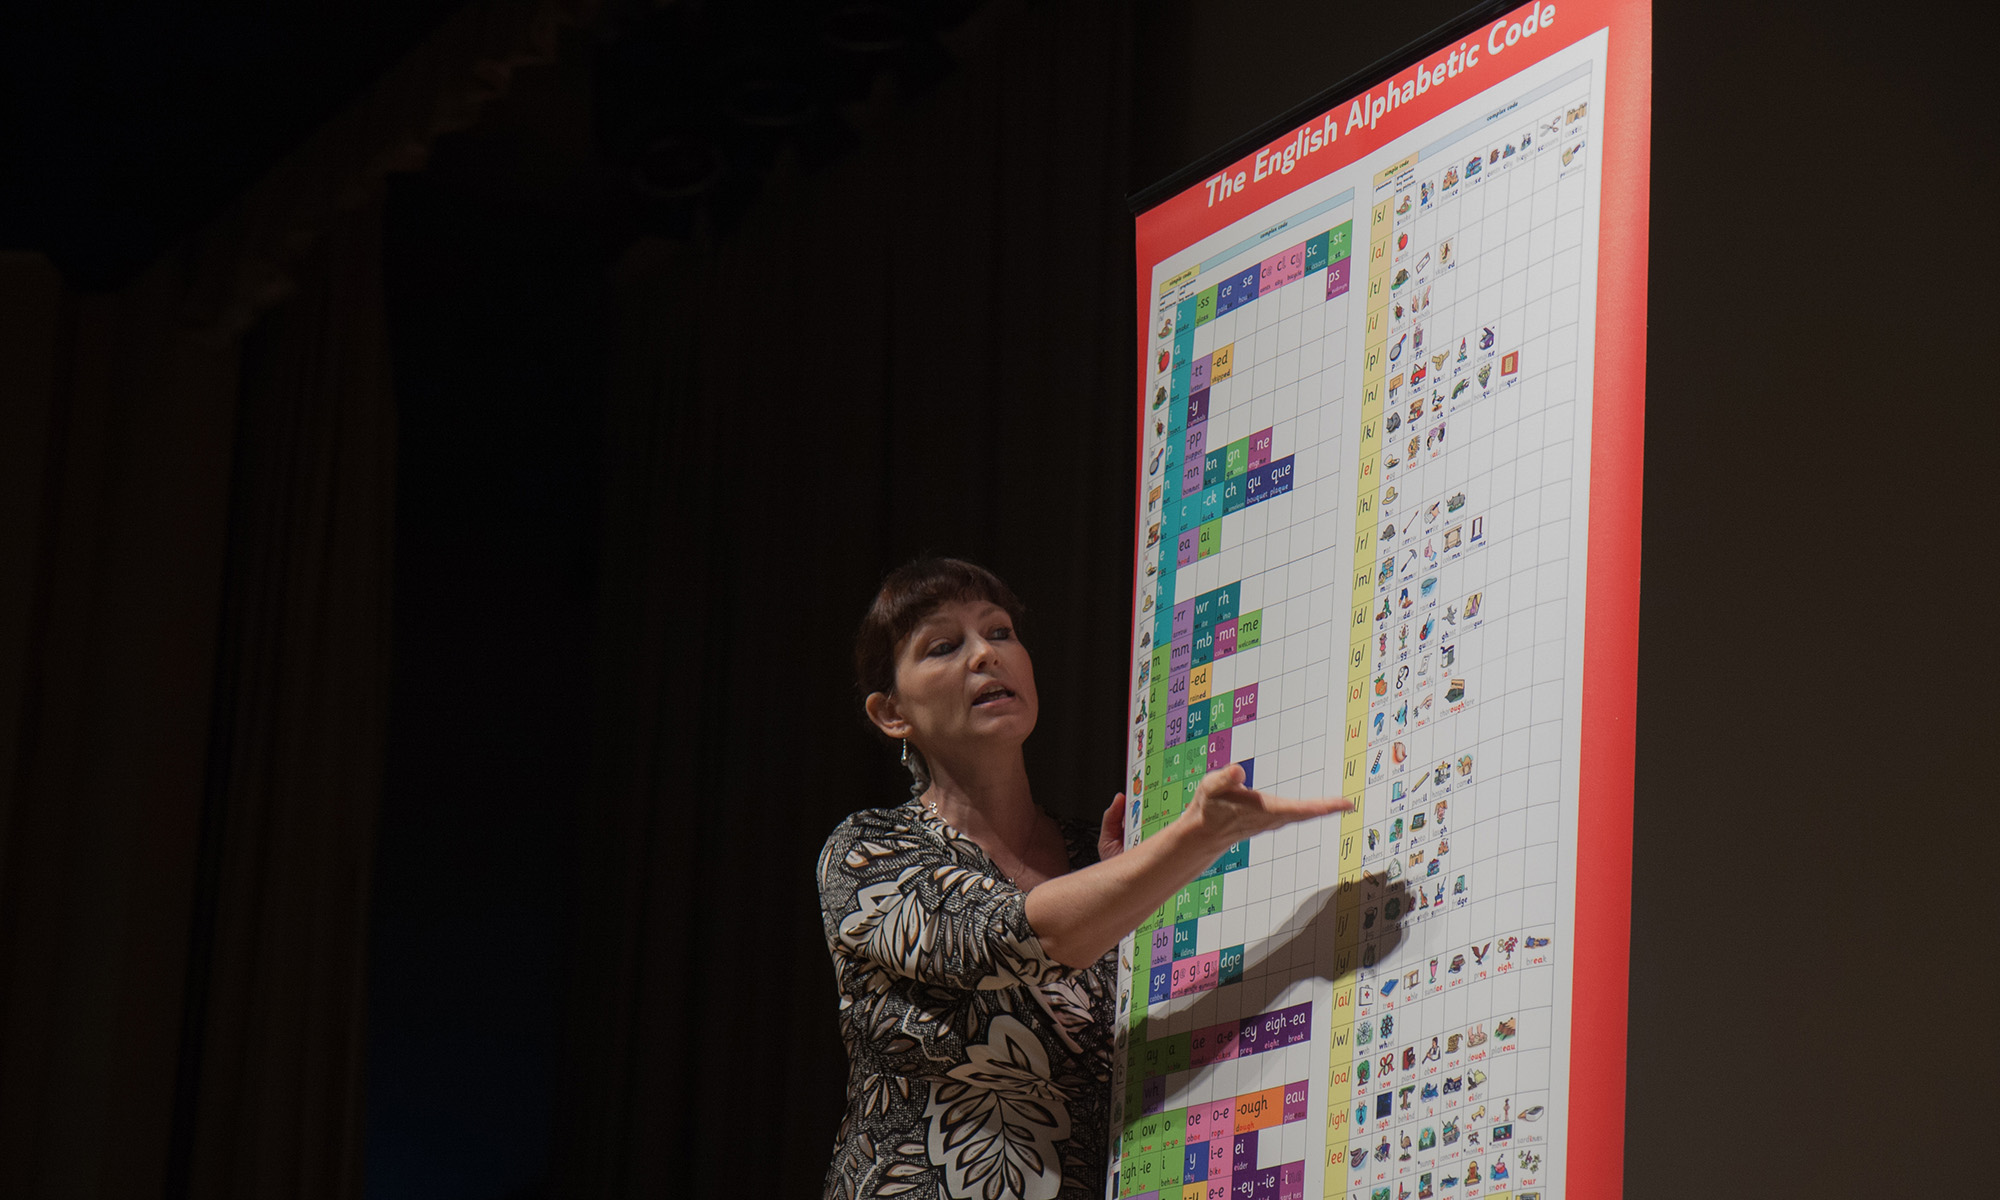 Debbie Showing Alphabetic Code Chart